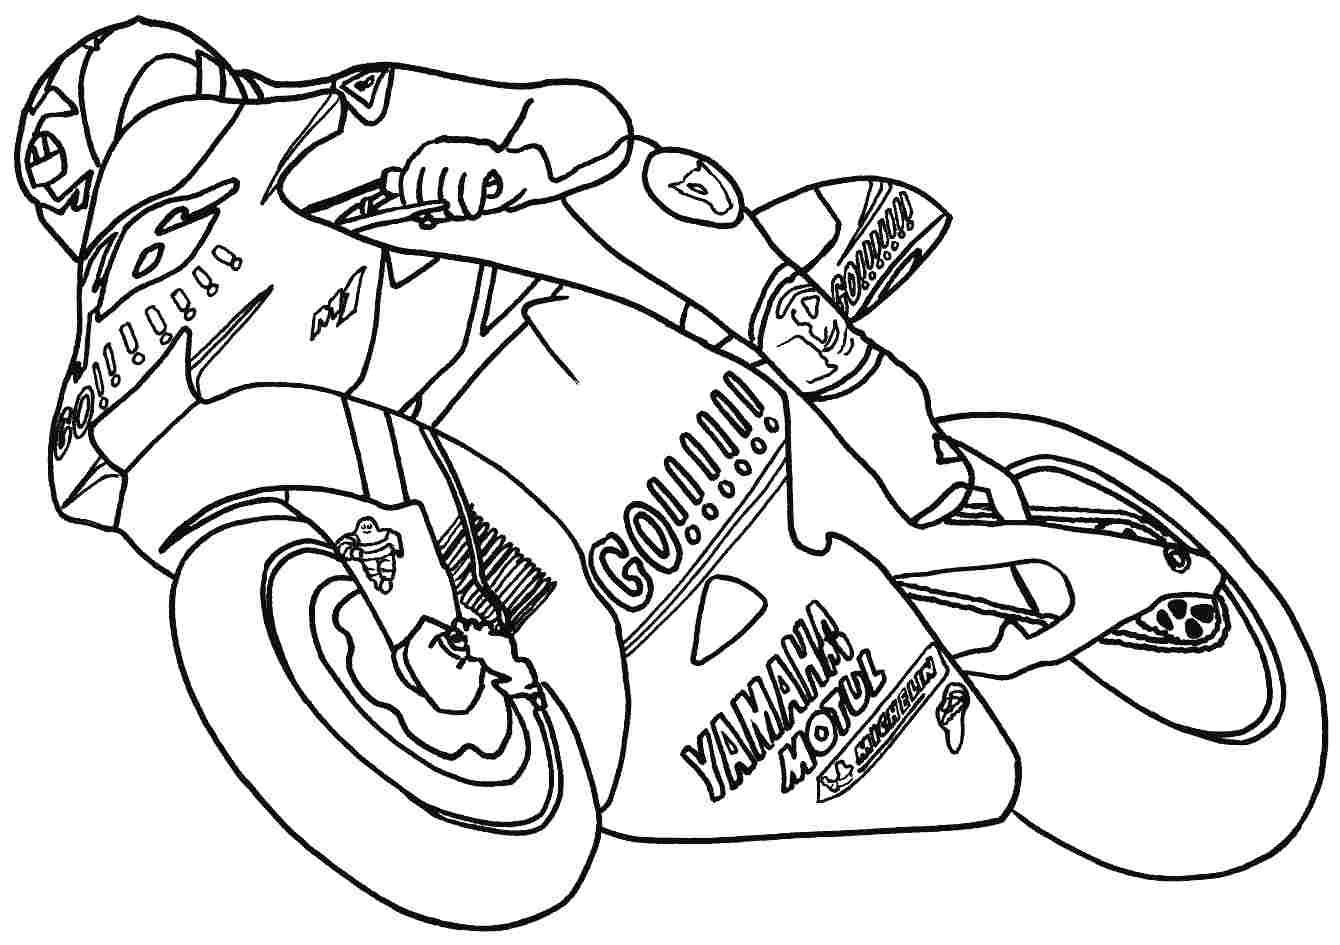 1340x945 Motorcycle Coloring Pages For Adults Google Search New Coloring